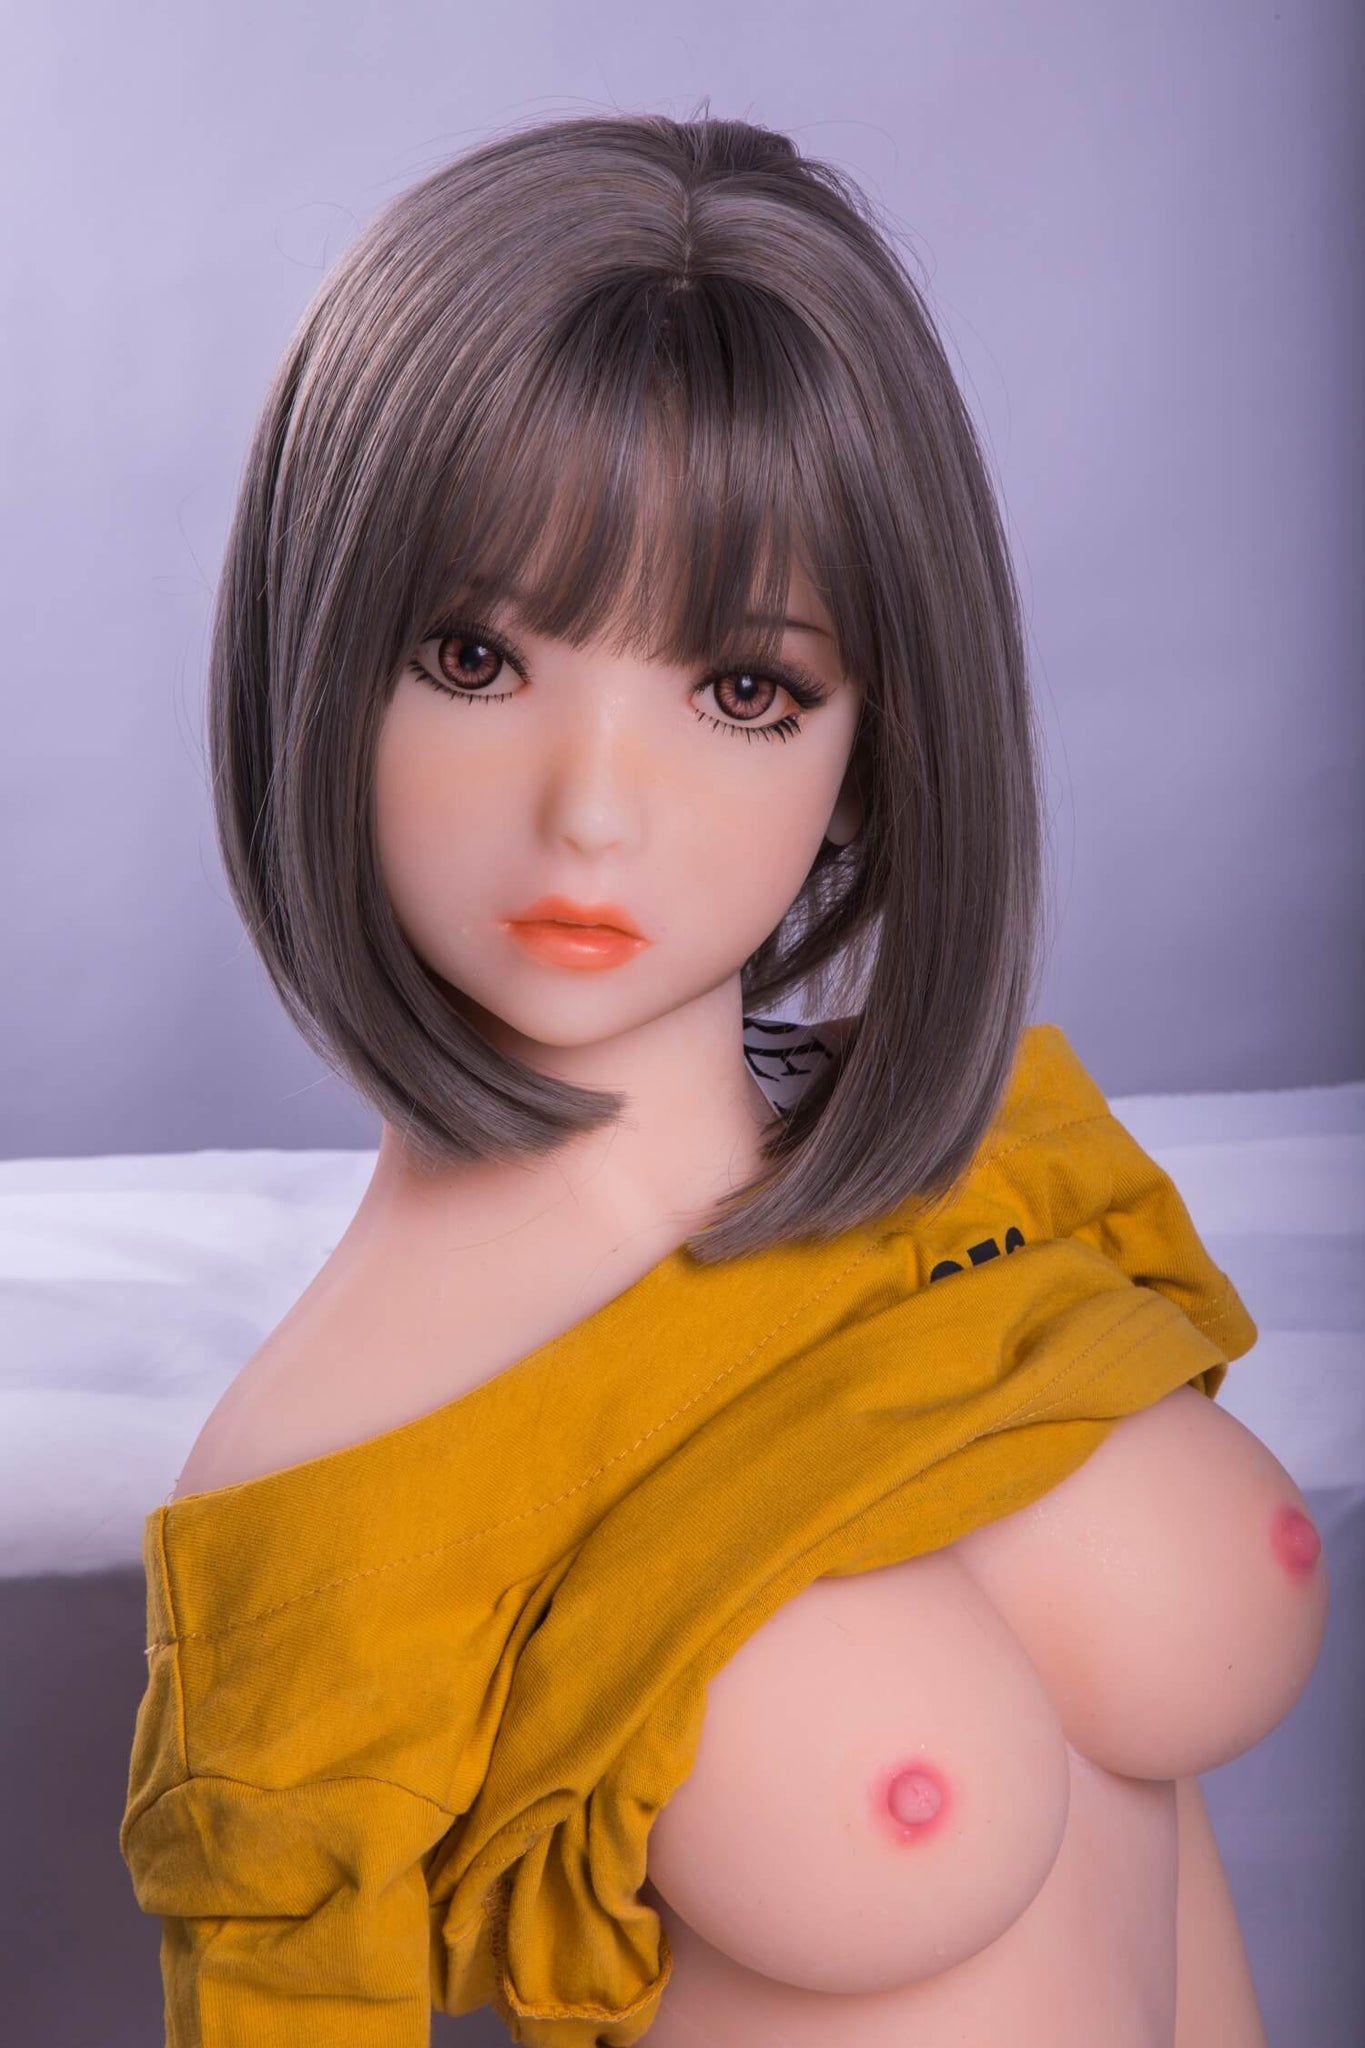 Yvonne Mini Sex doll Young Small Sex Doll with Normal Breast and Butt